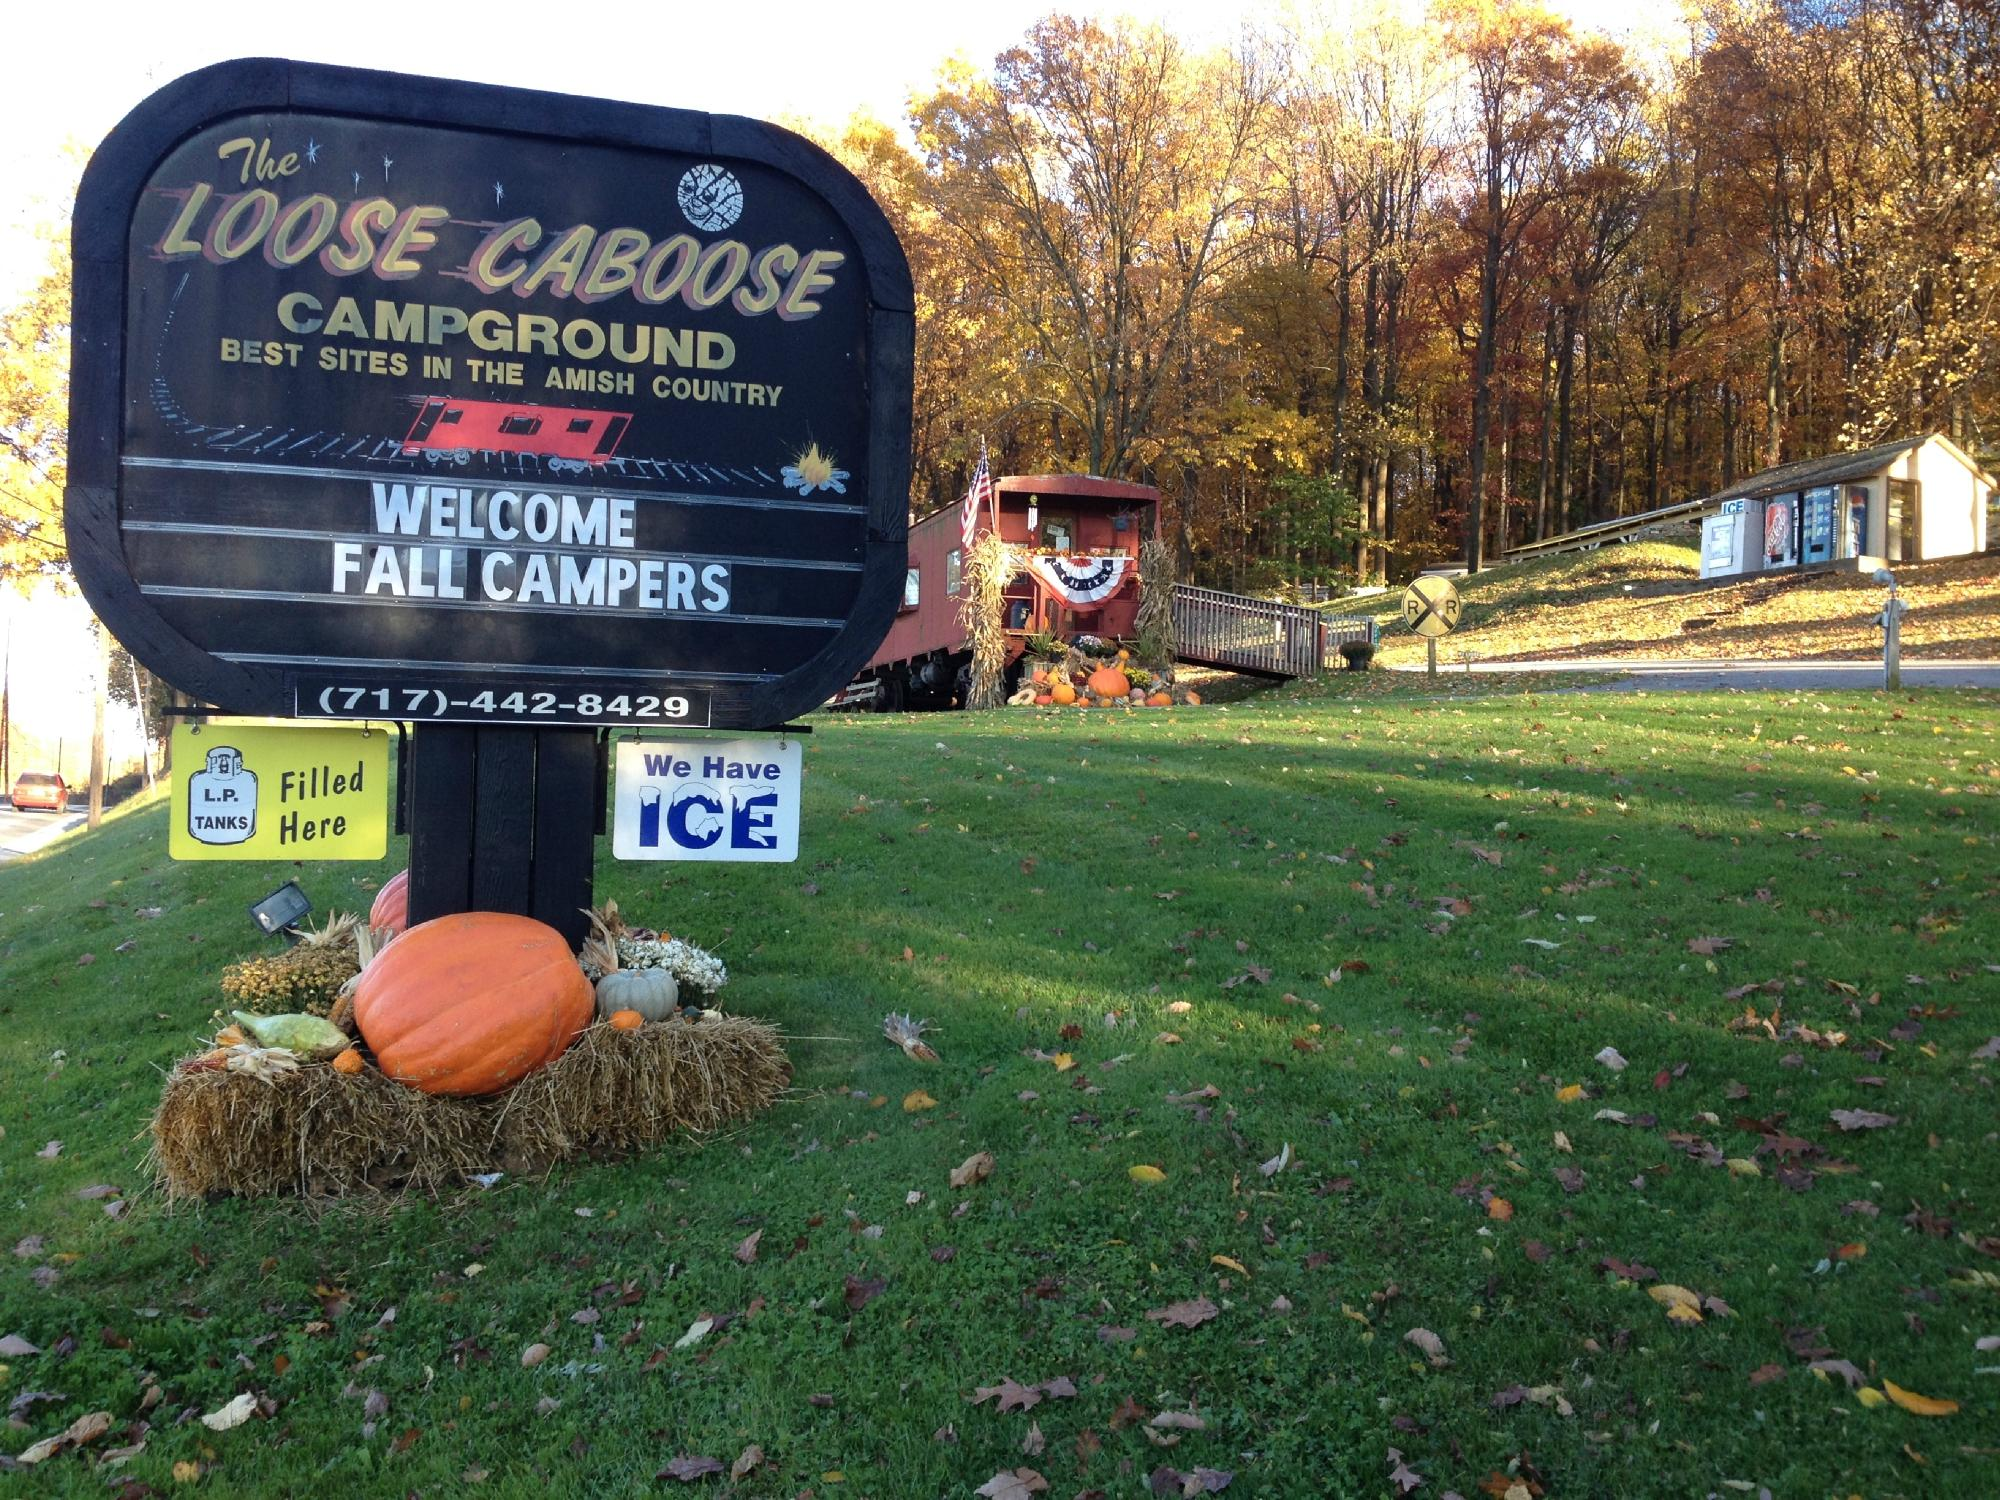 The Loose Caboose Campground